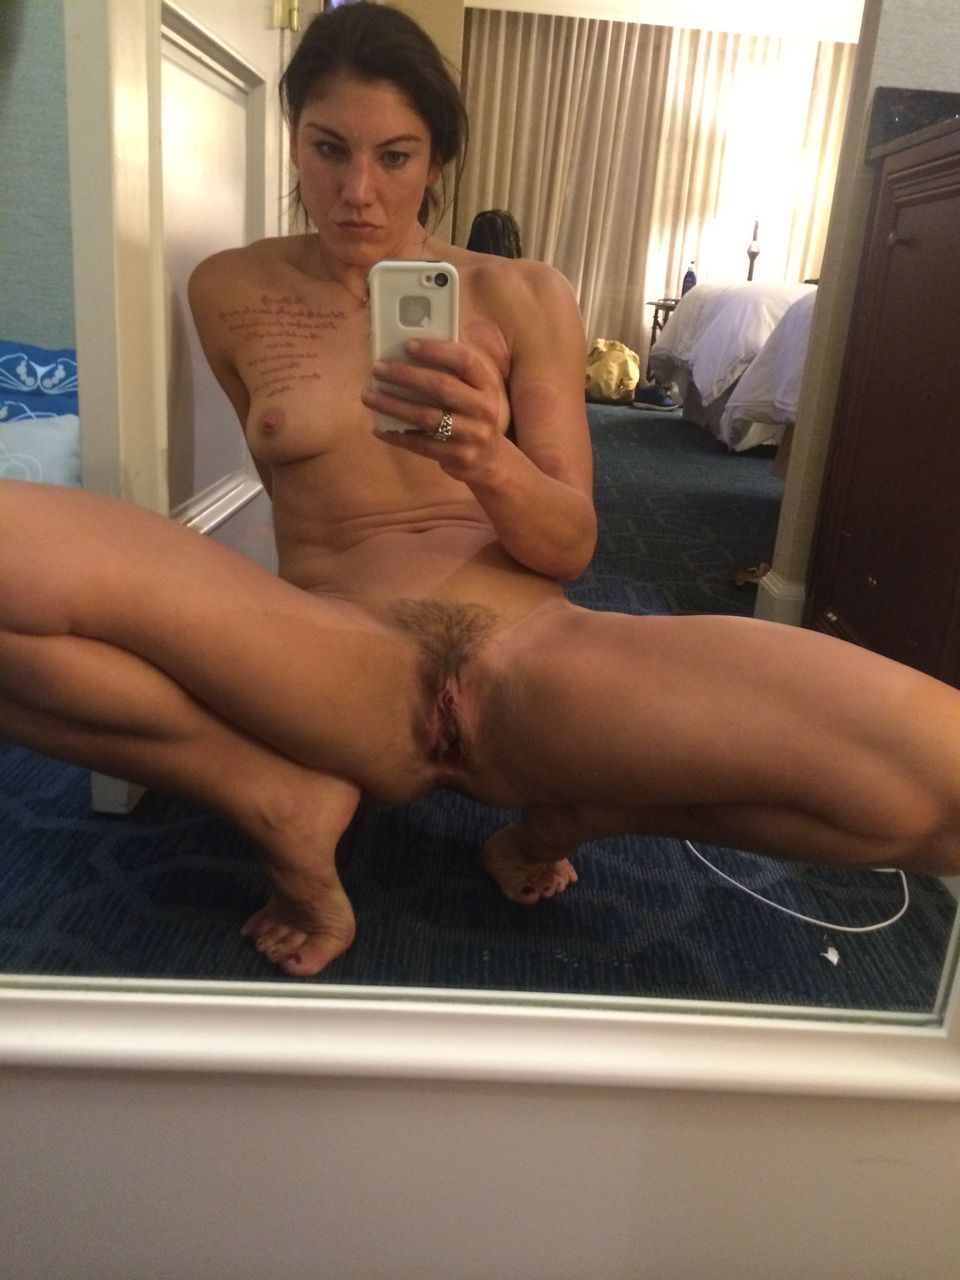 These Leaked Hope Solo Nudes Are Just Nasty (23 PICS)